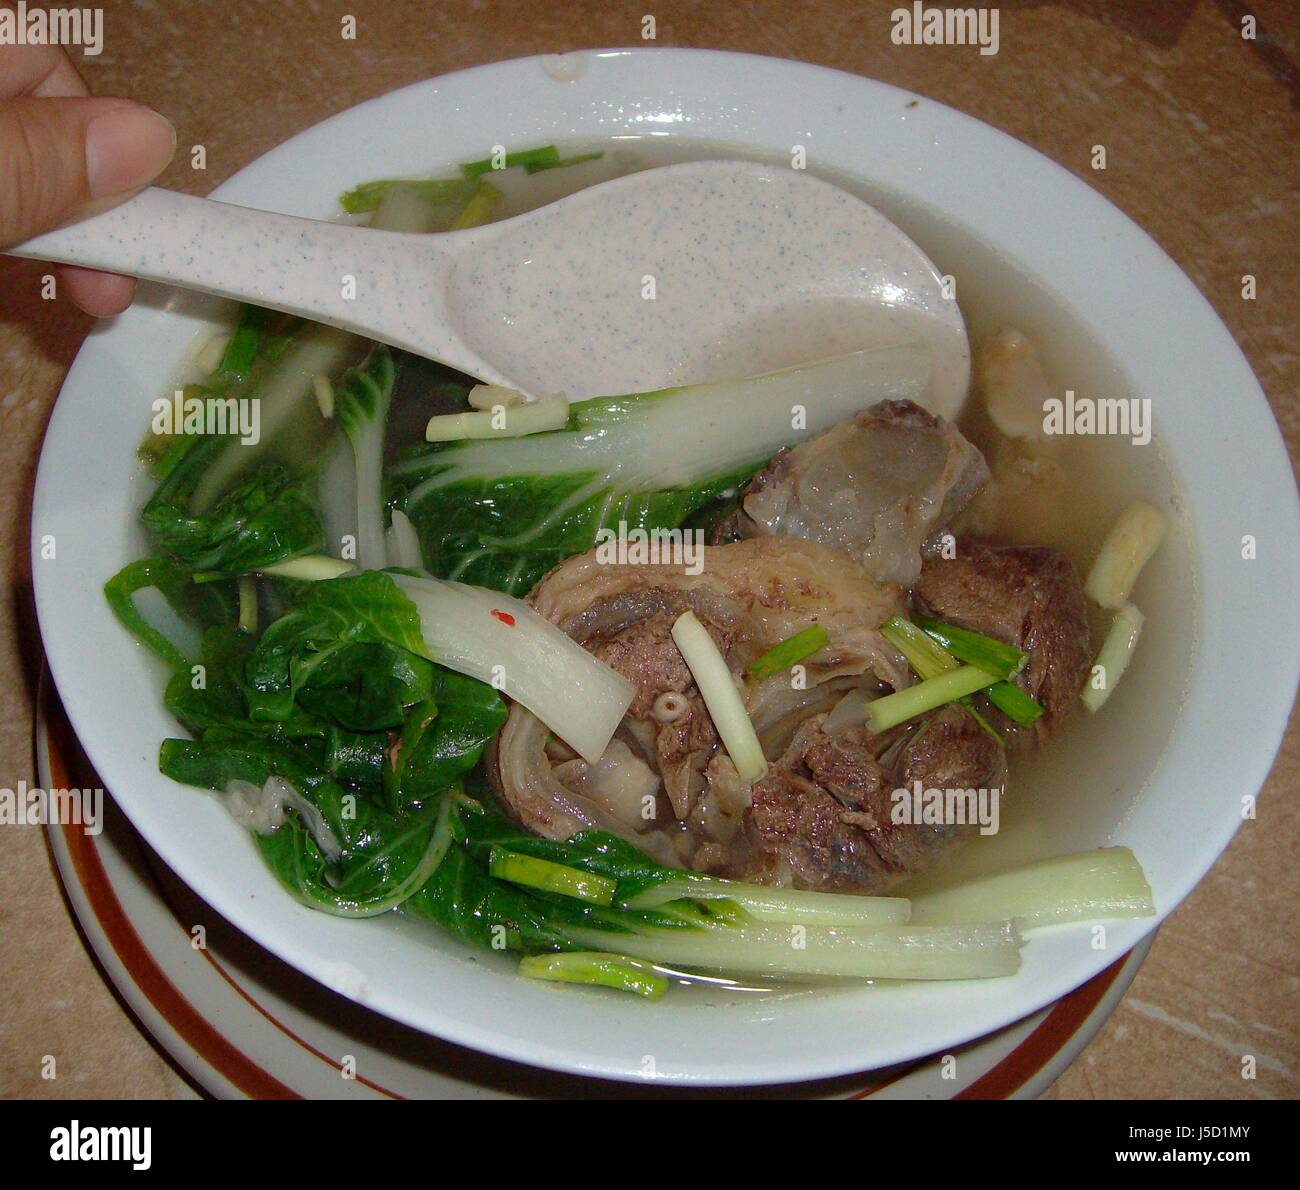 Beef And Vegetable Soup Filipino Favorite Beef Bone Soup With Cabbage And Onions Is A Favorite Dish In The Philippines